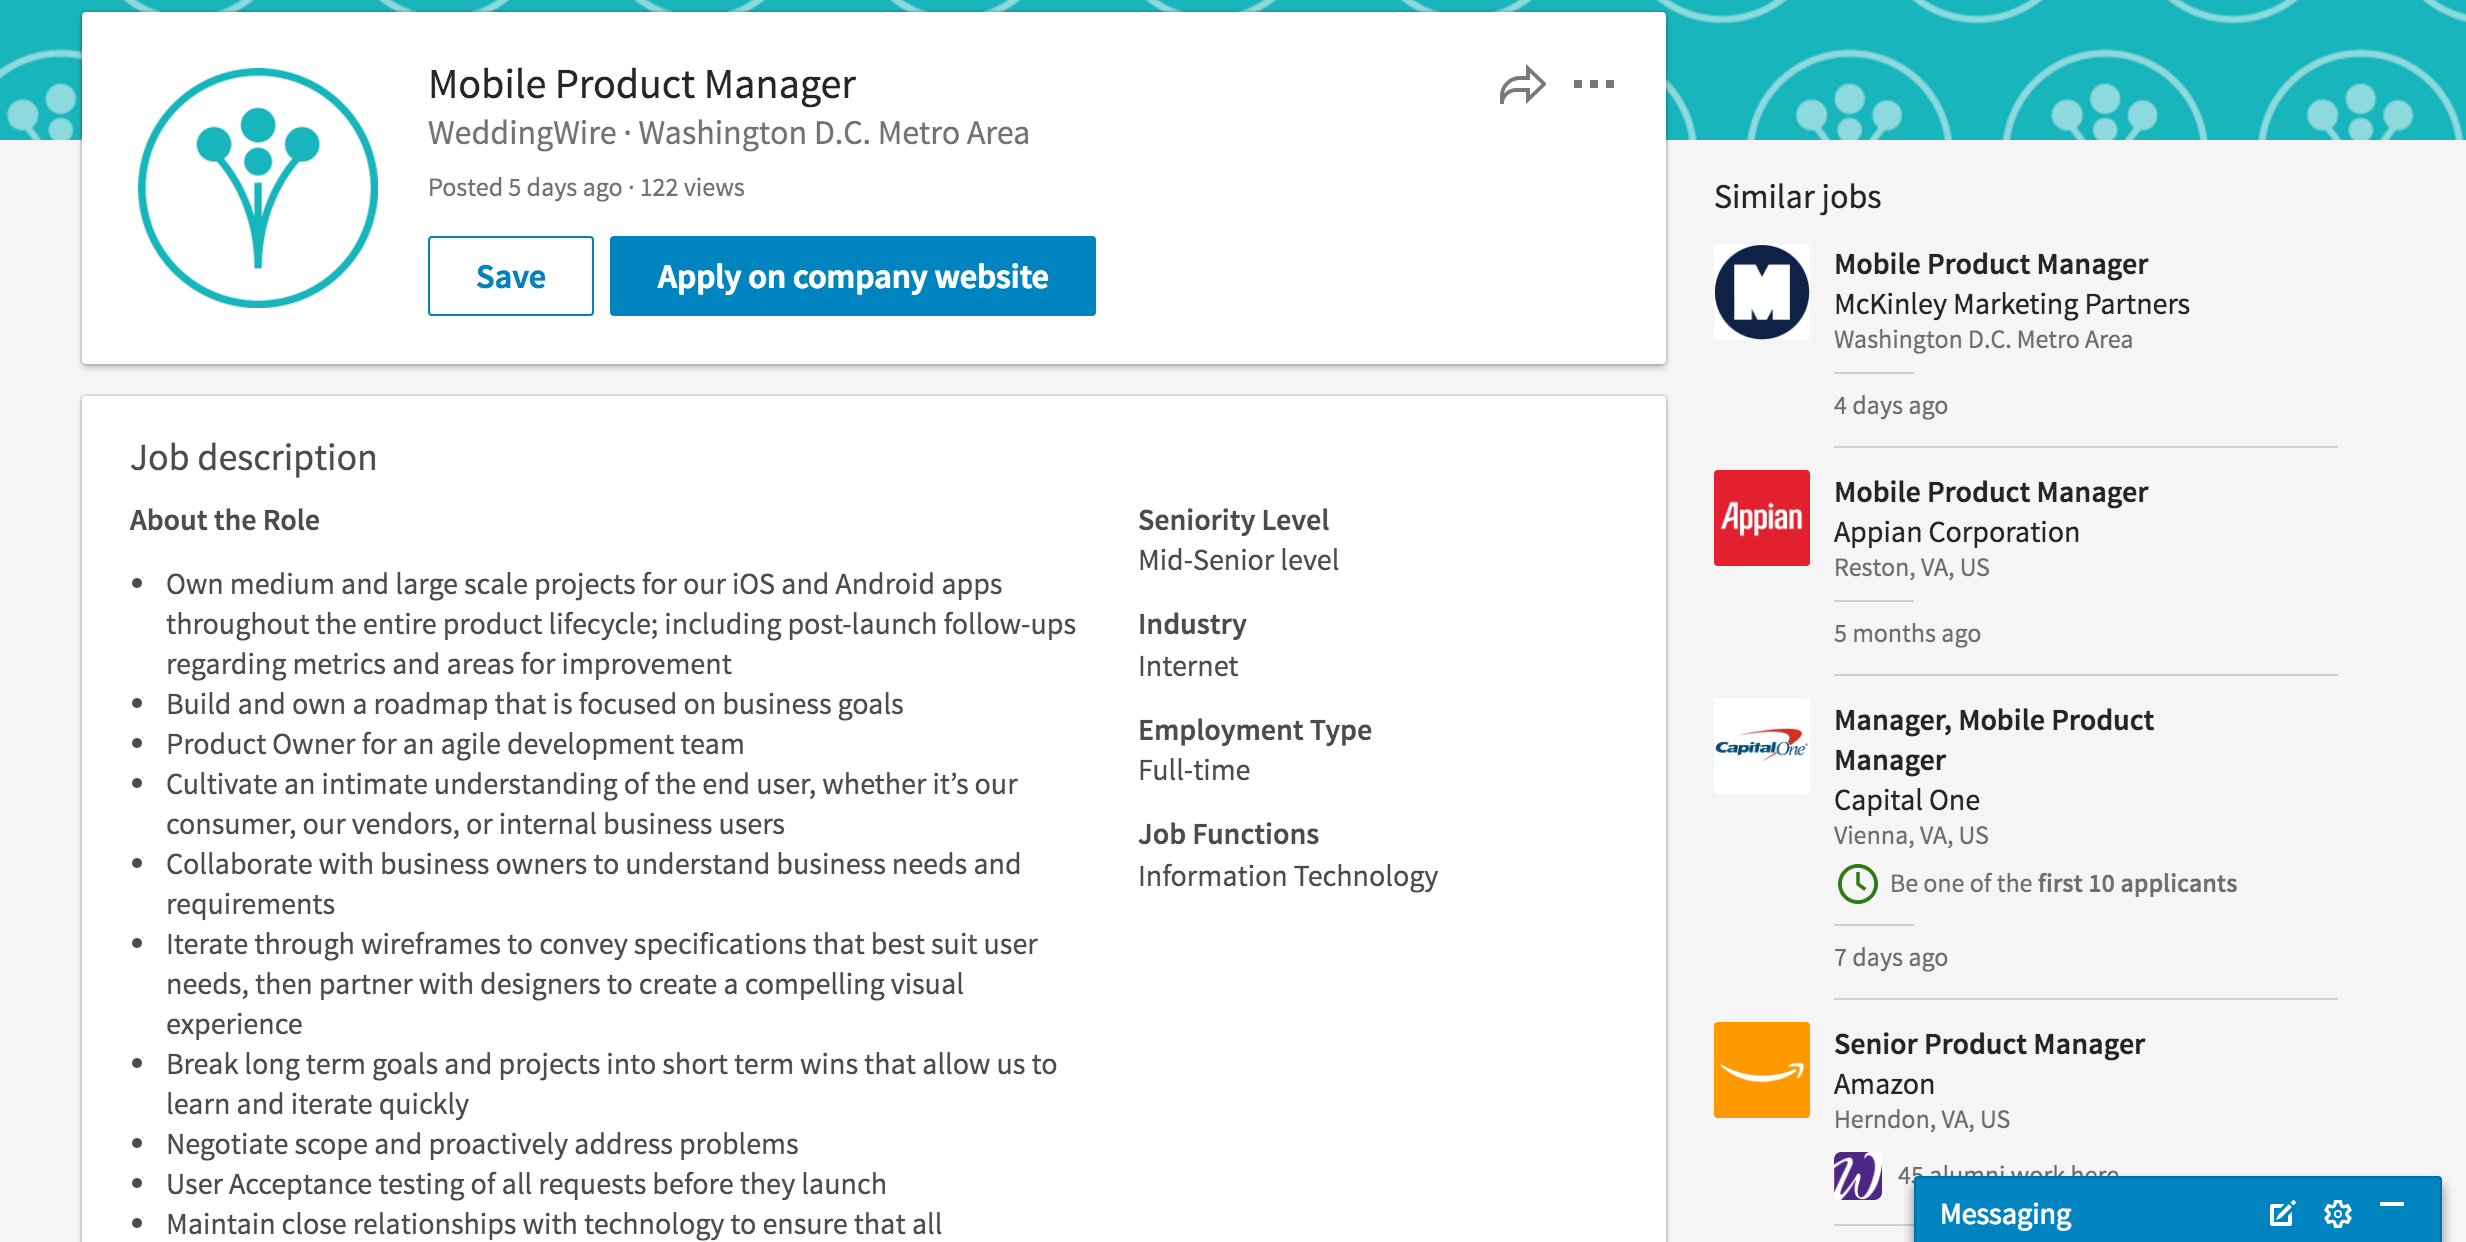 Mobile Product Manager at WeddingWire on LinkedIn